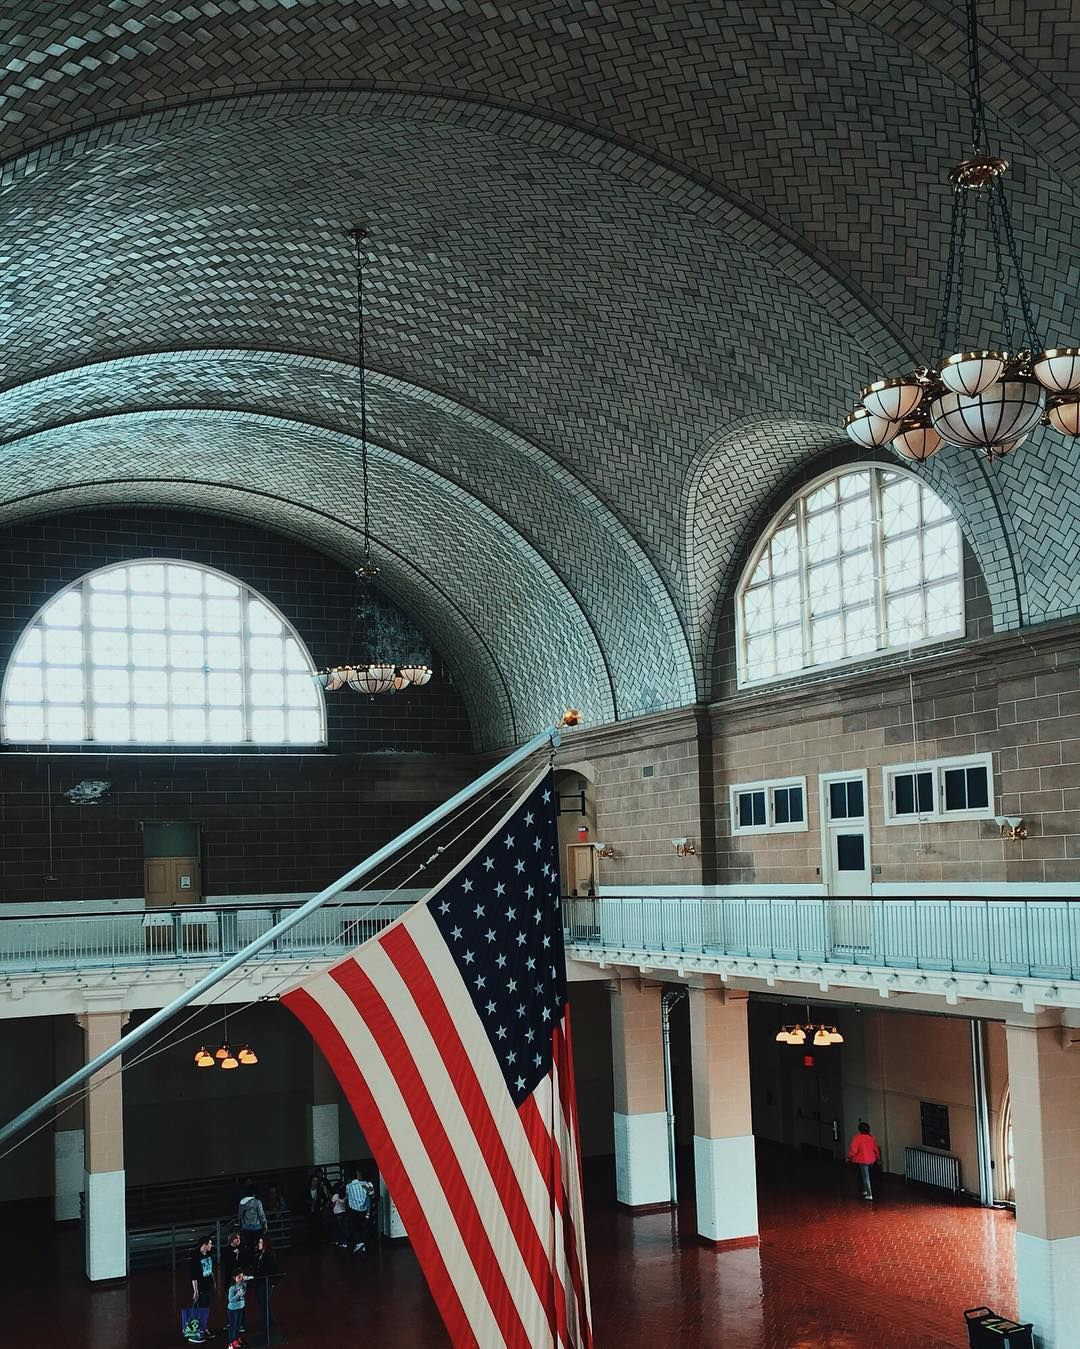 The Immigration hall on Ellis Island